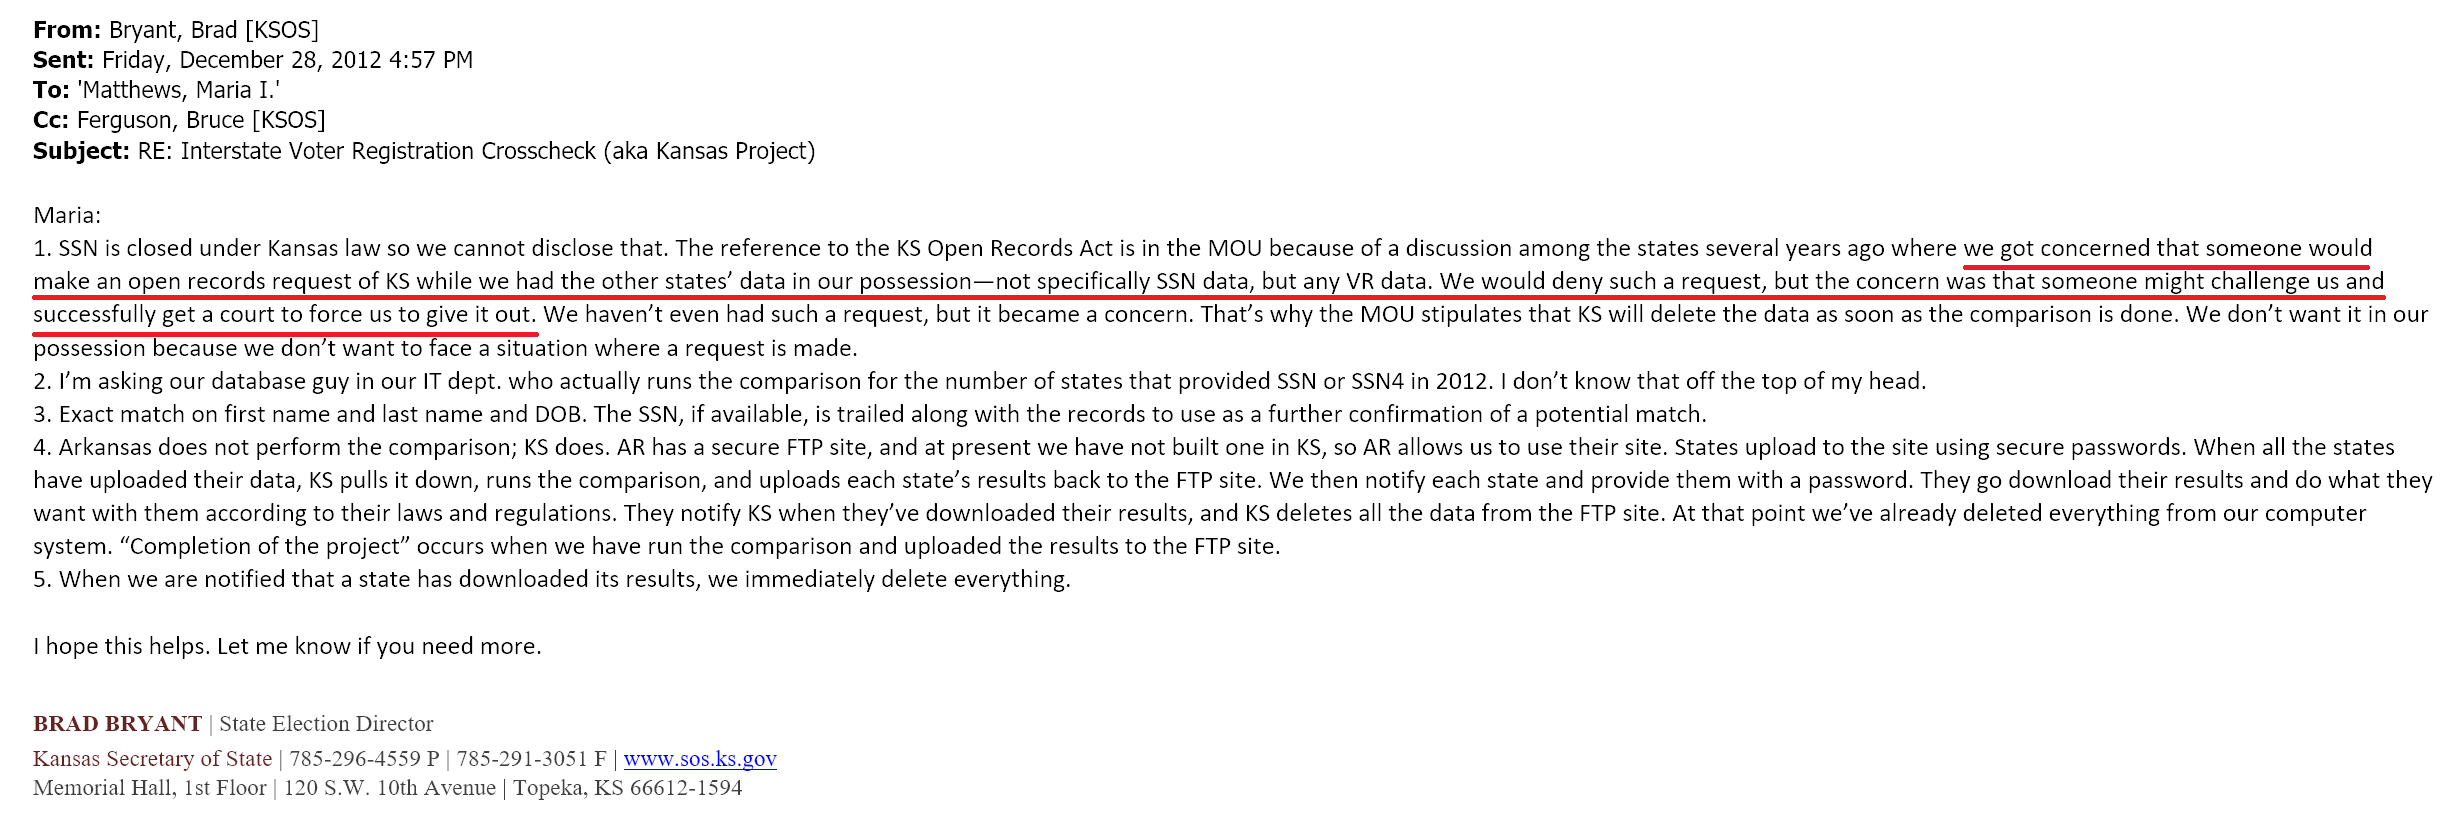 Florida is concerned... - Florida is worried that someone might sue for all state's voter data in Jan/Feb when it is all in their possession... Just a few months away!Also, Kansas' Director of Elections doesn't know who runs the Crosscheck comparisons?